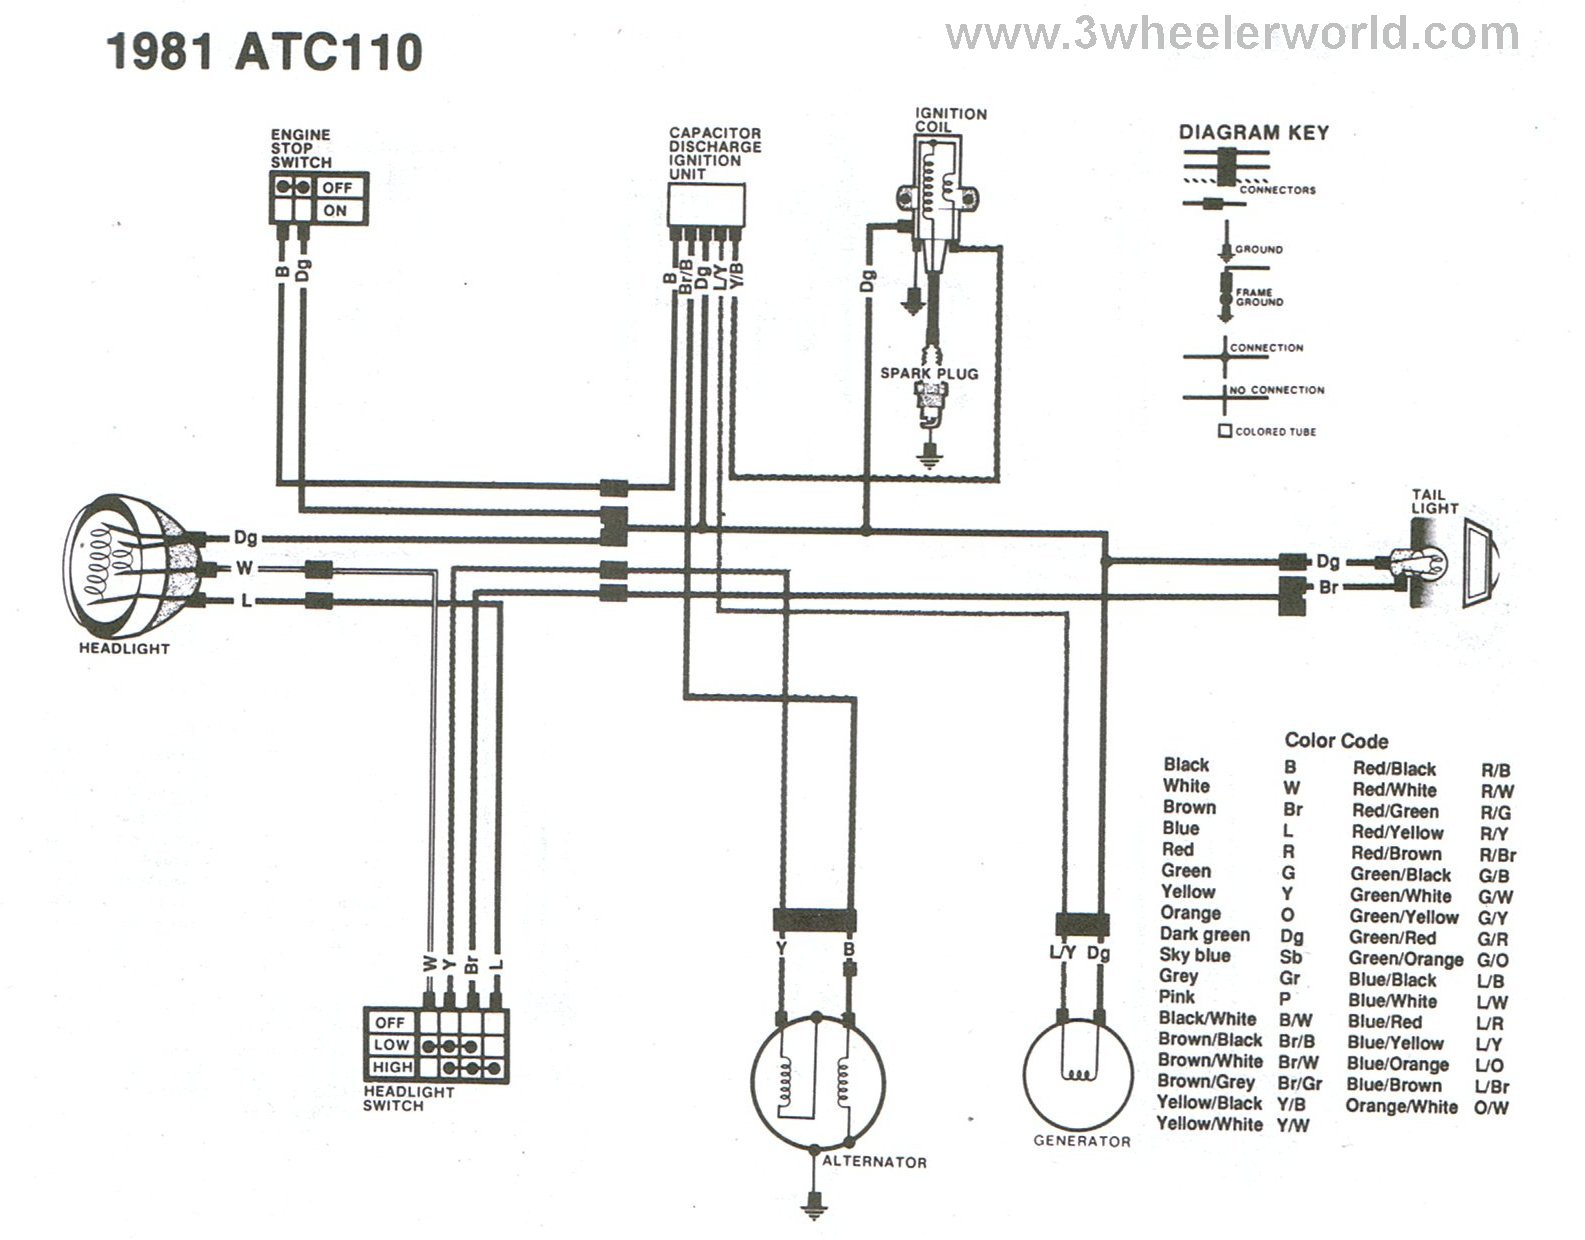 Honda Atc 110 Wiring Diagram On 81 200, Honda, Free Engine